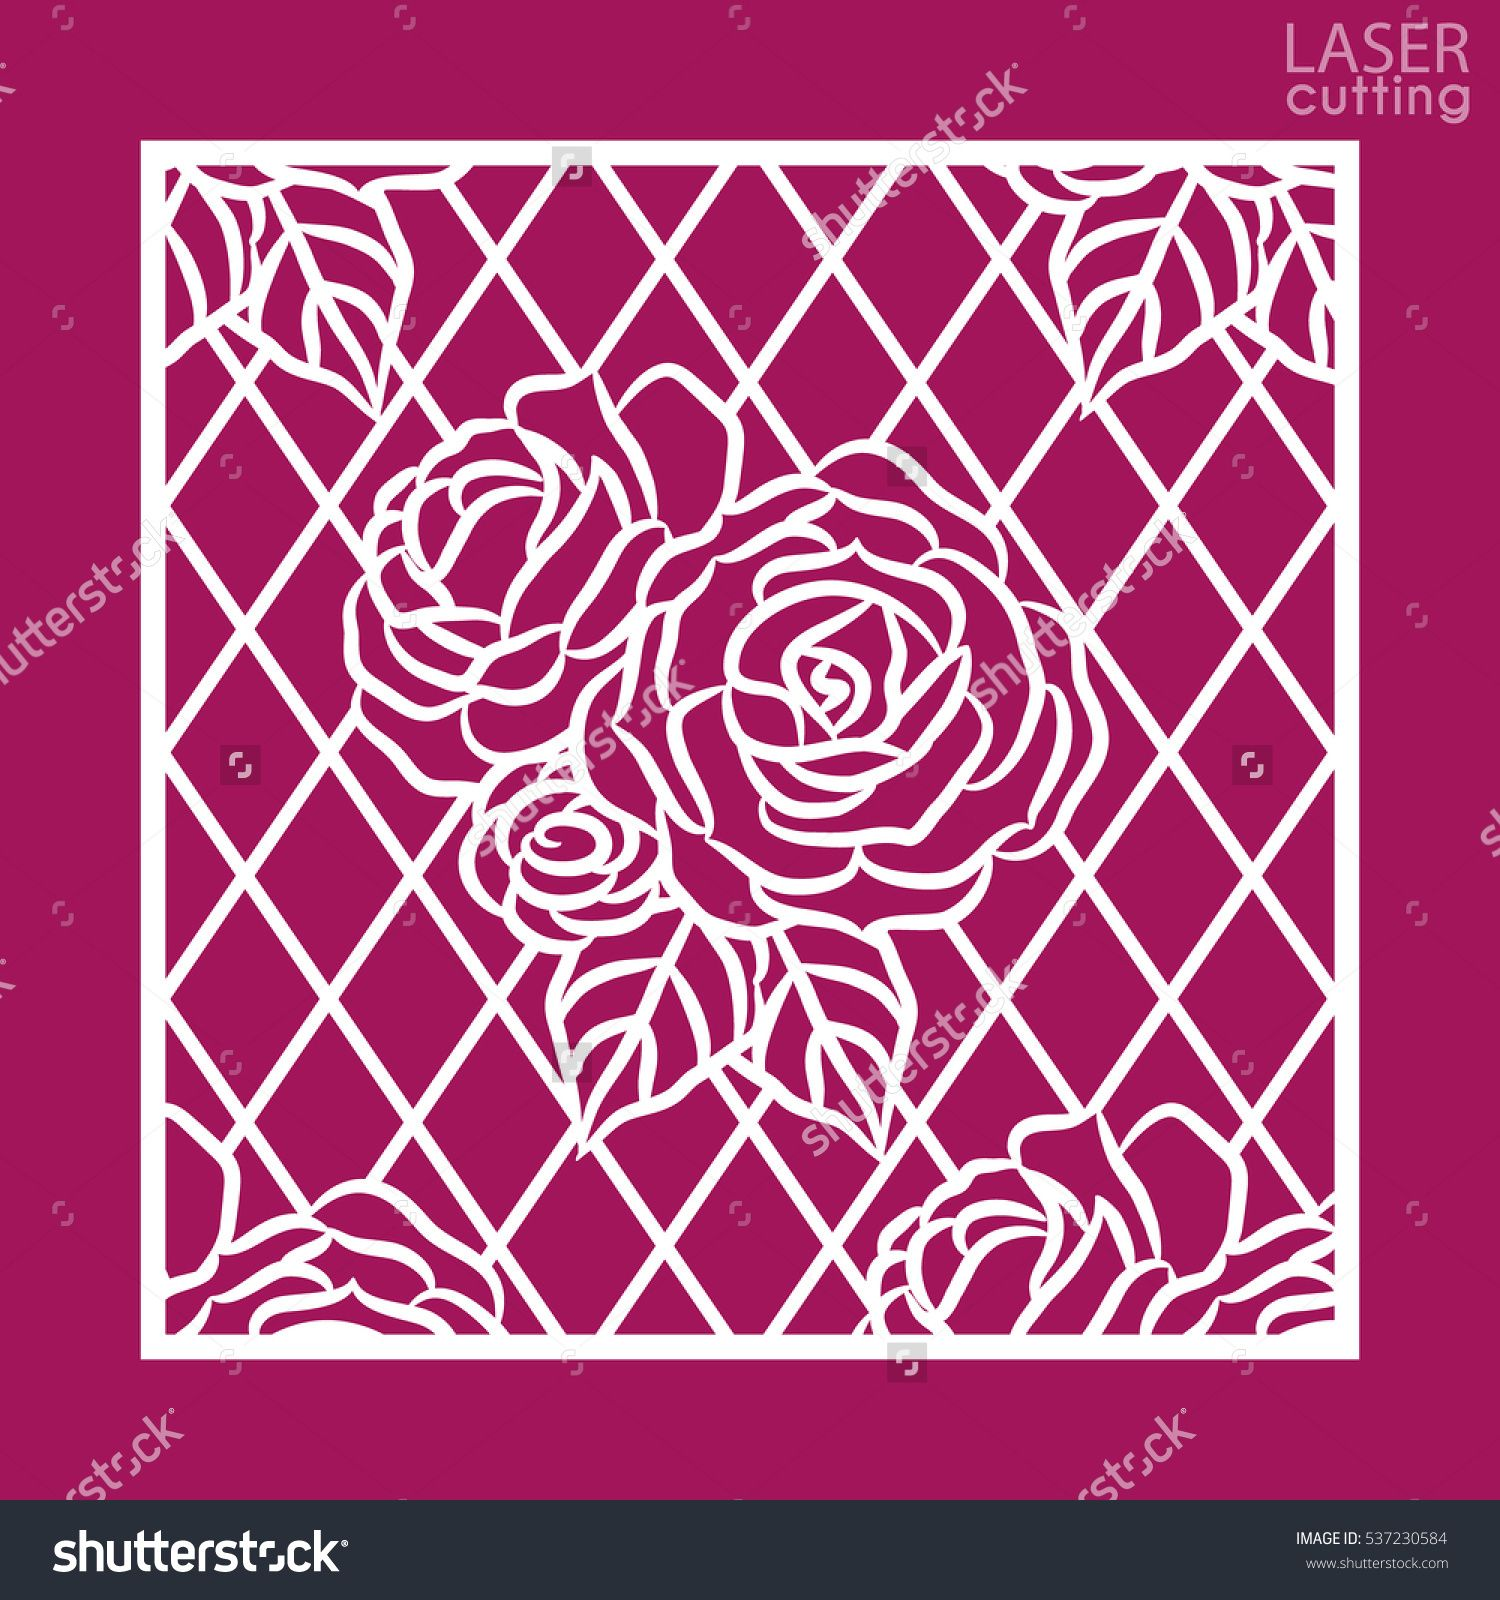 Stock vector laser cut square ornamental panel with pattern of roses laser cut square ornamental panel with pattern of roses template of wedding invitation or greeting card cabinet fretwork panel metal design wood carving stopboris Images